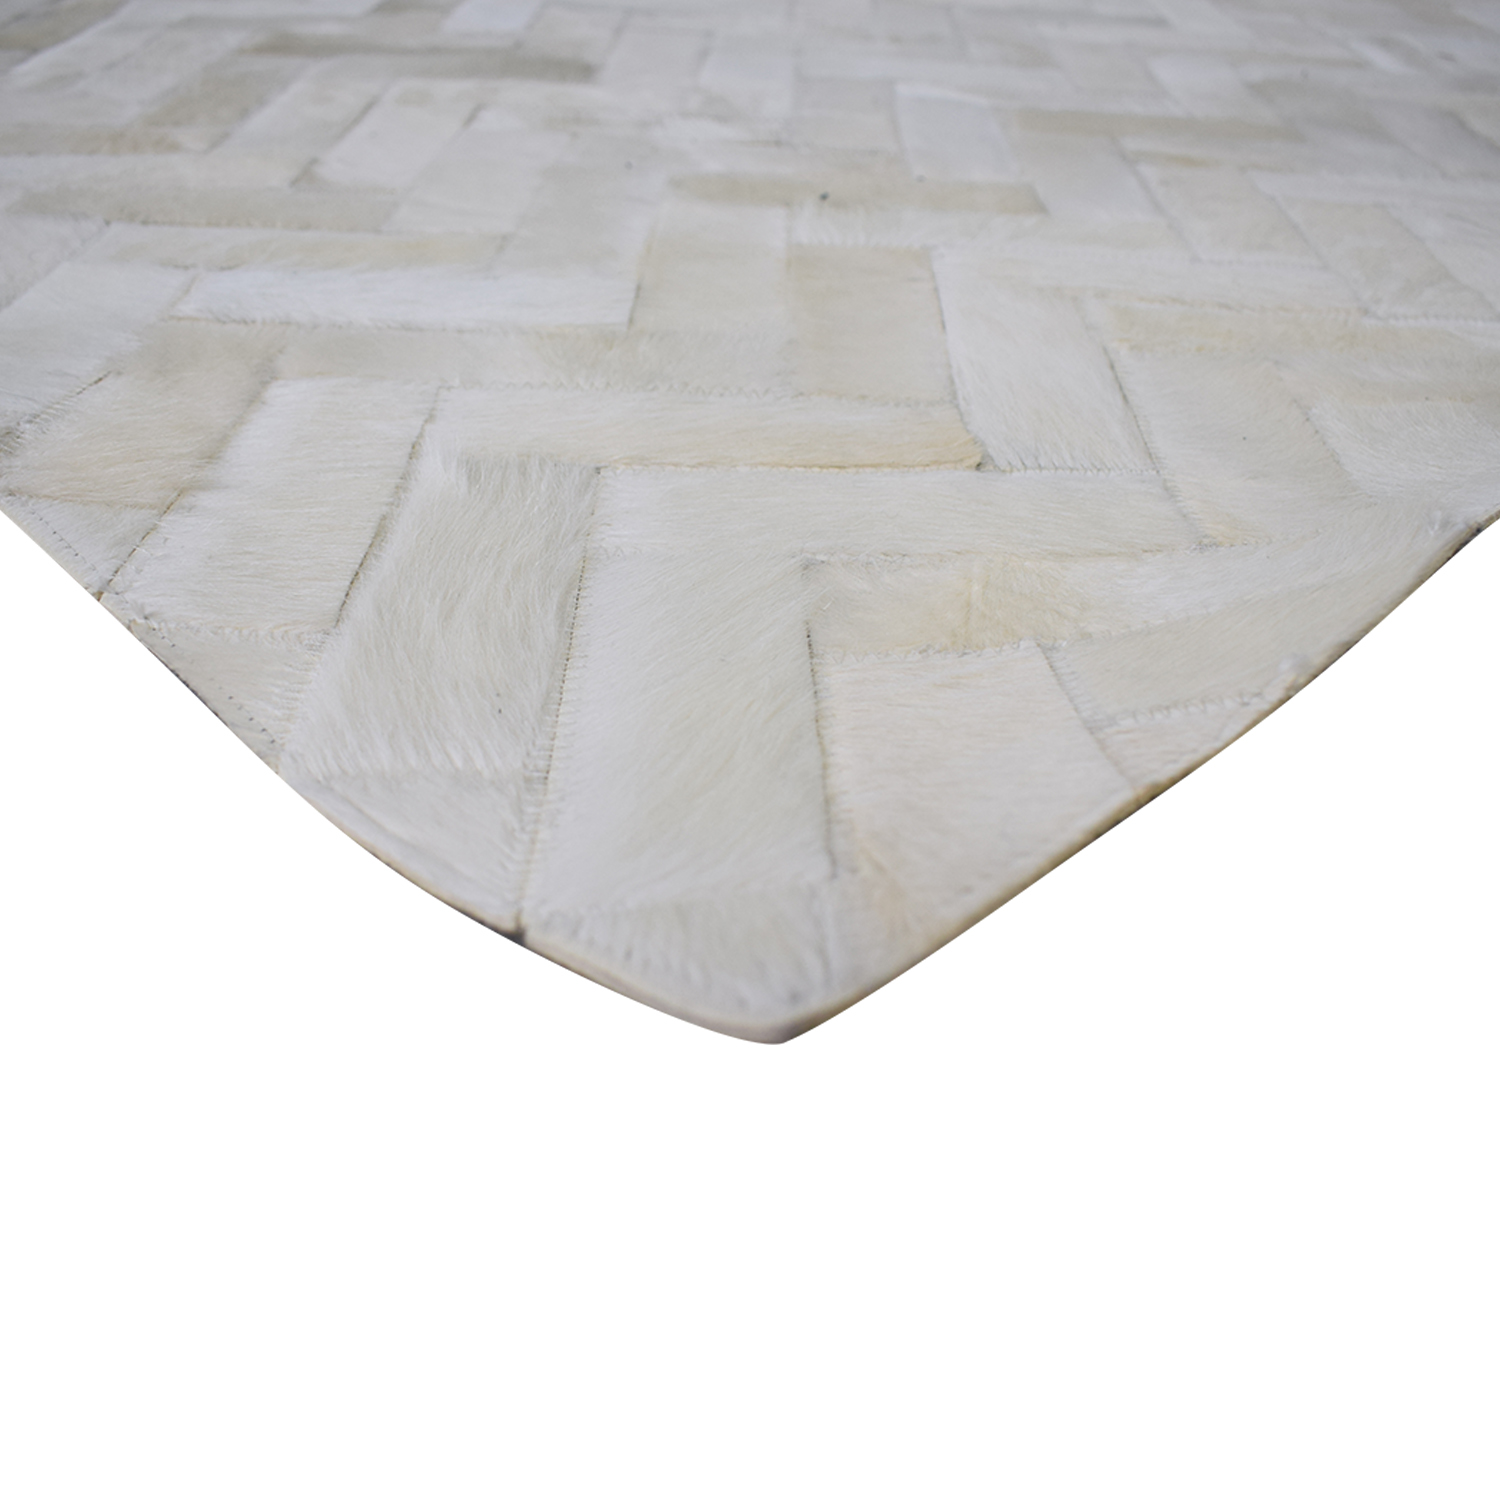 West Elm West Elm Pieced + Patched Cowhide Rug nyc